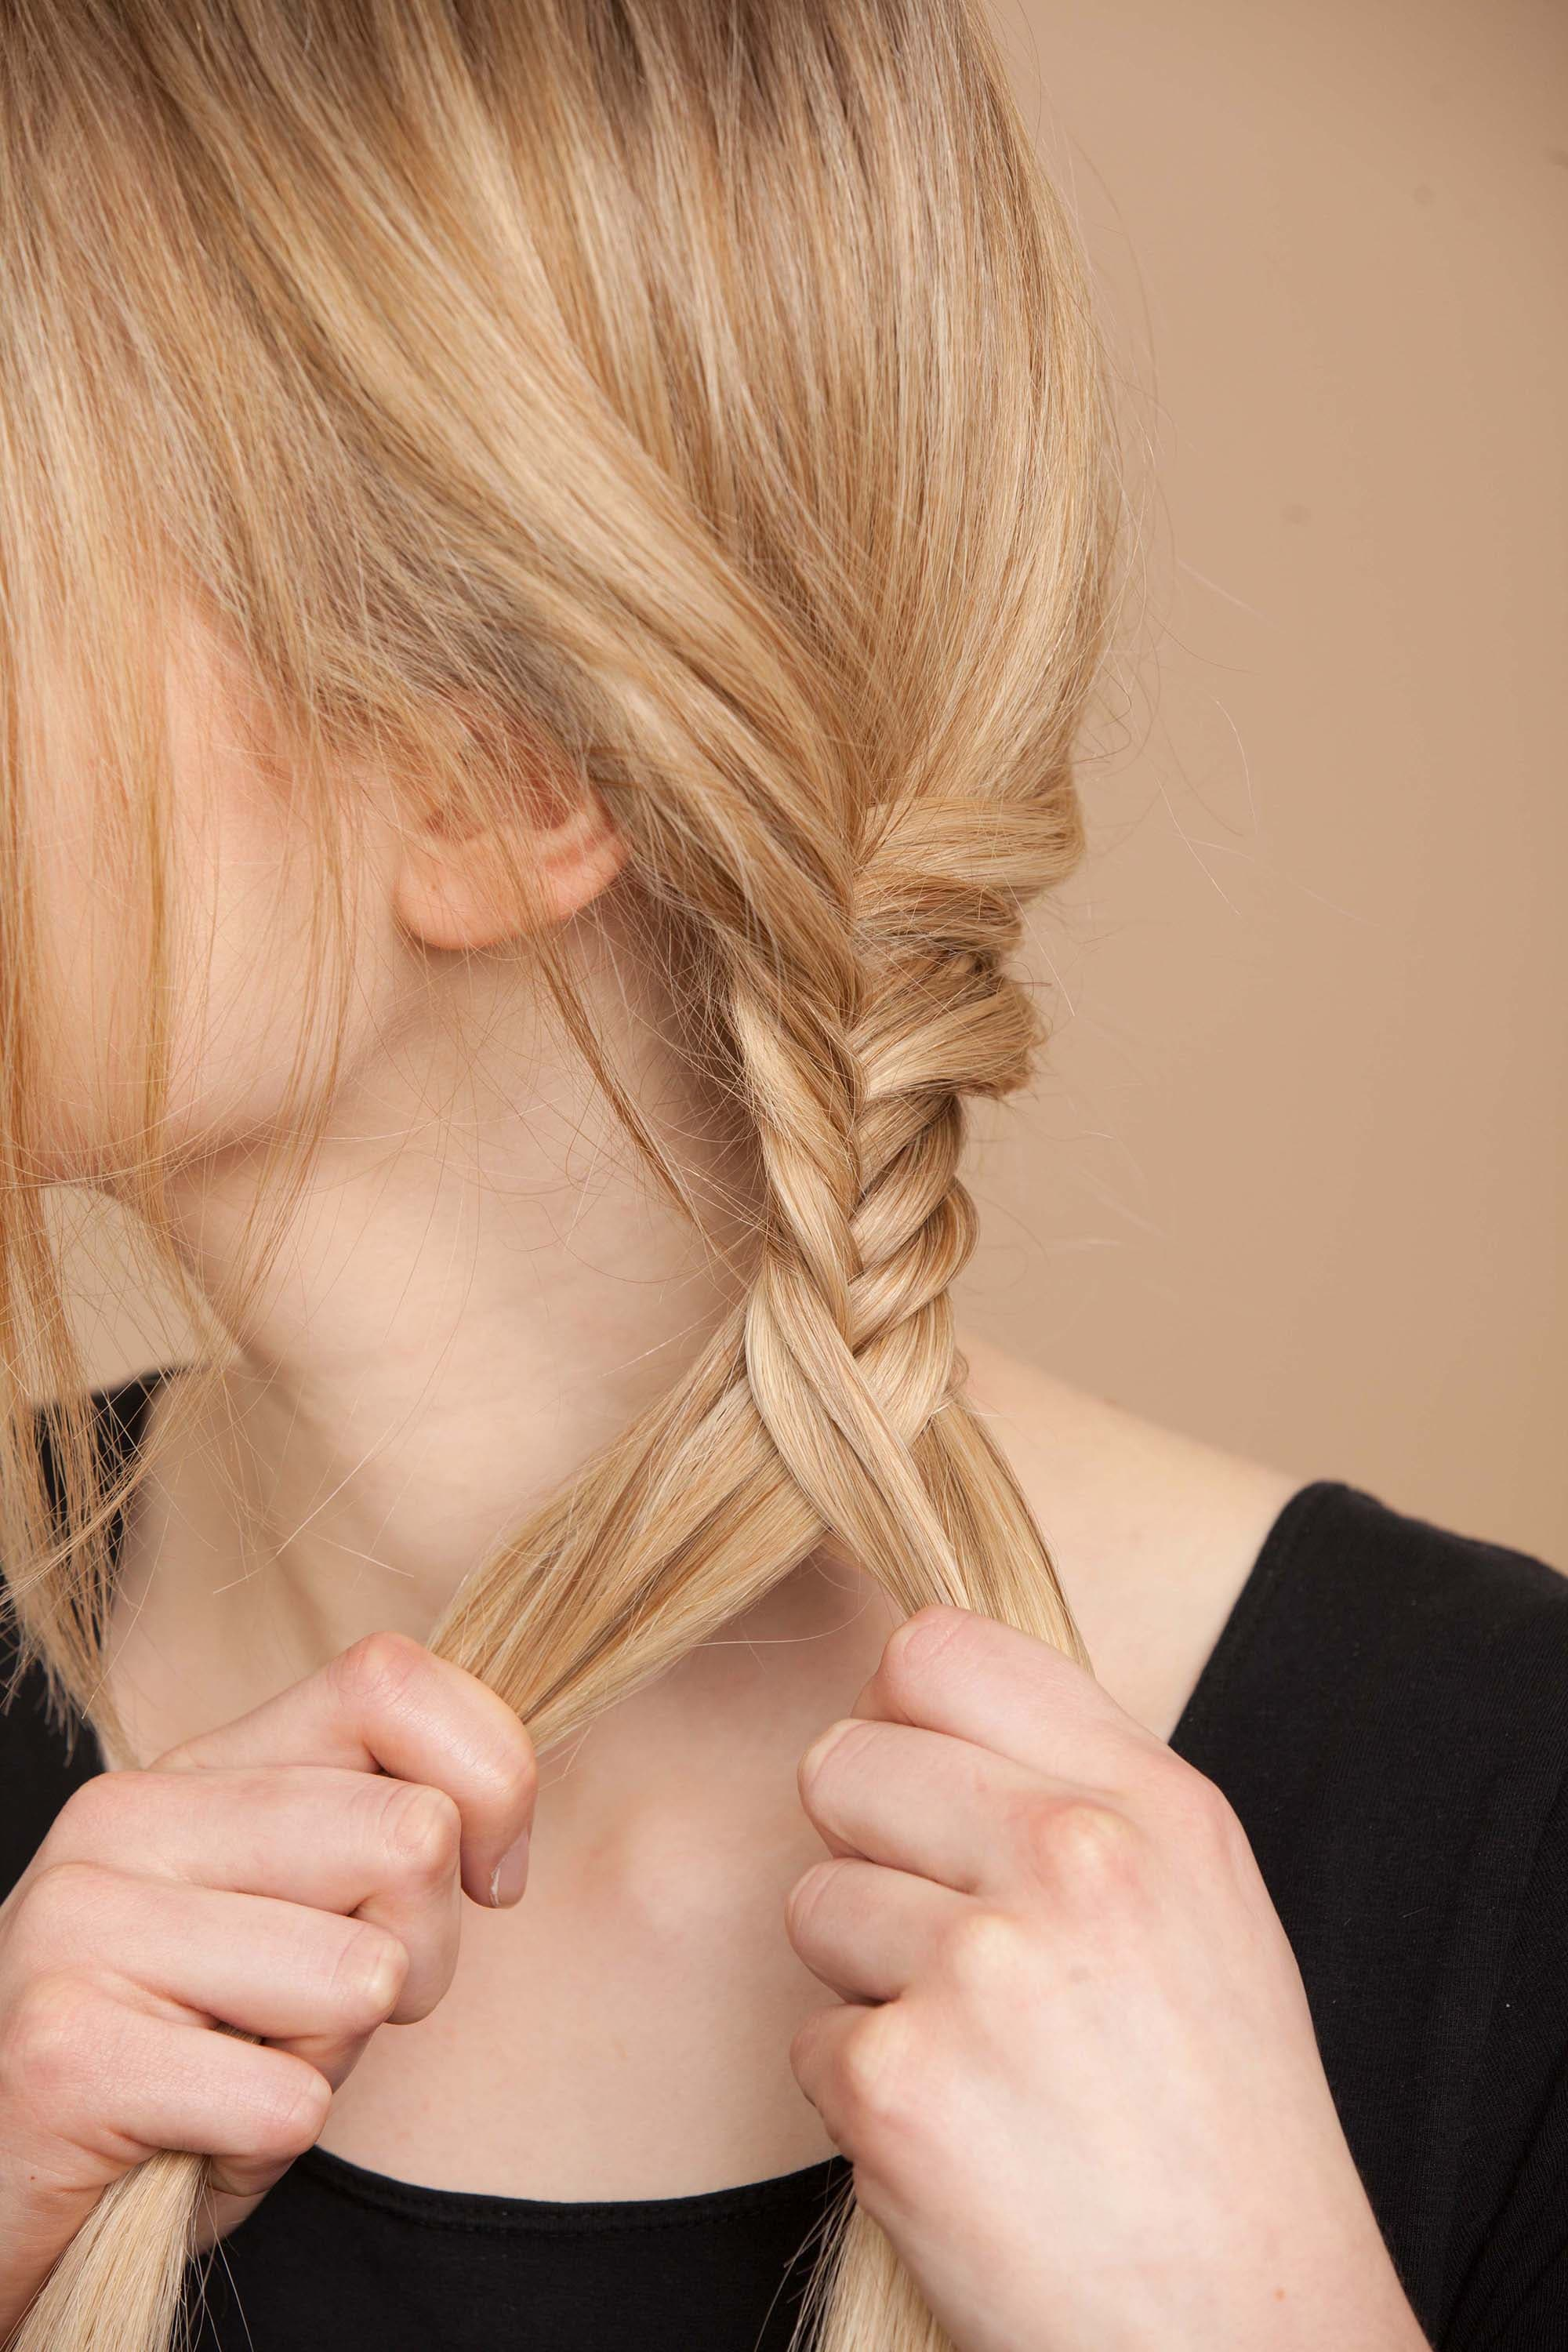 blonde woman creates fishtail braid and continues plait